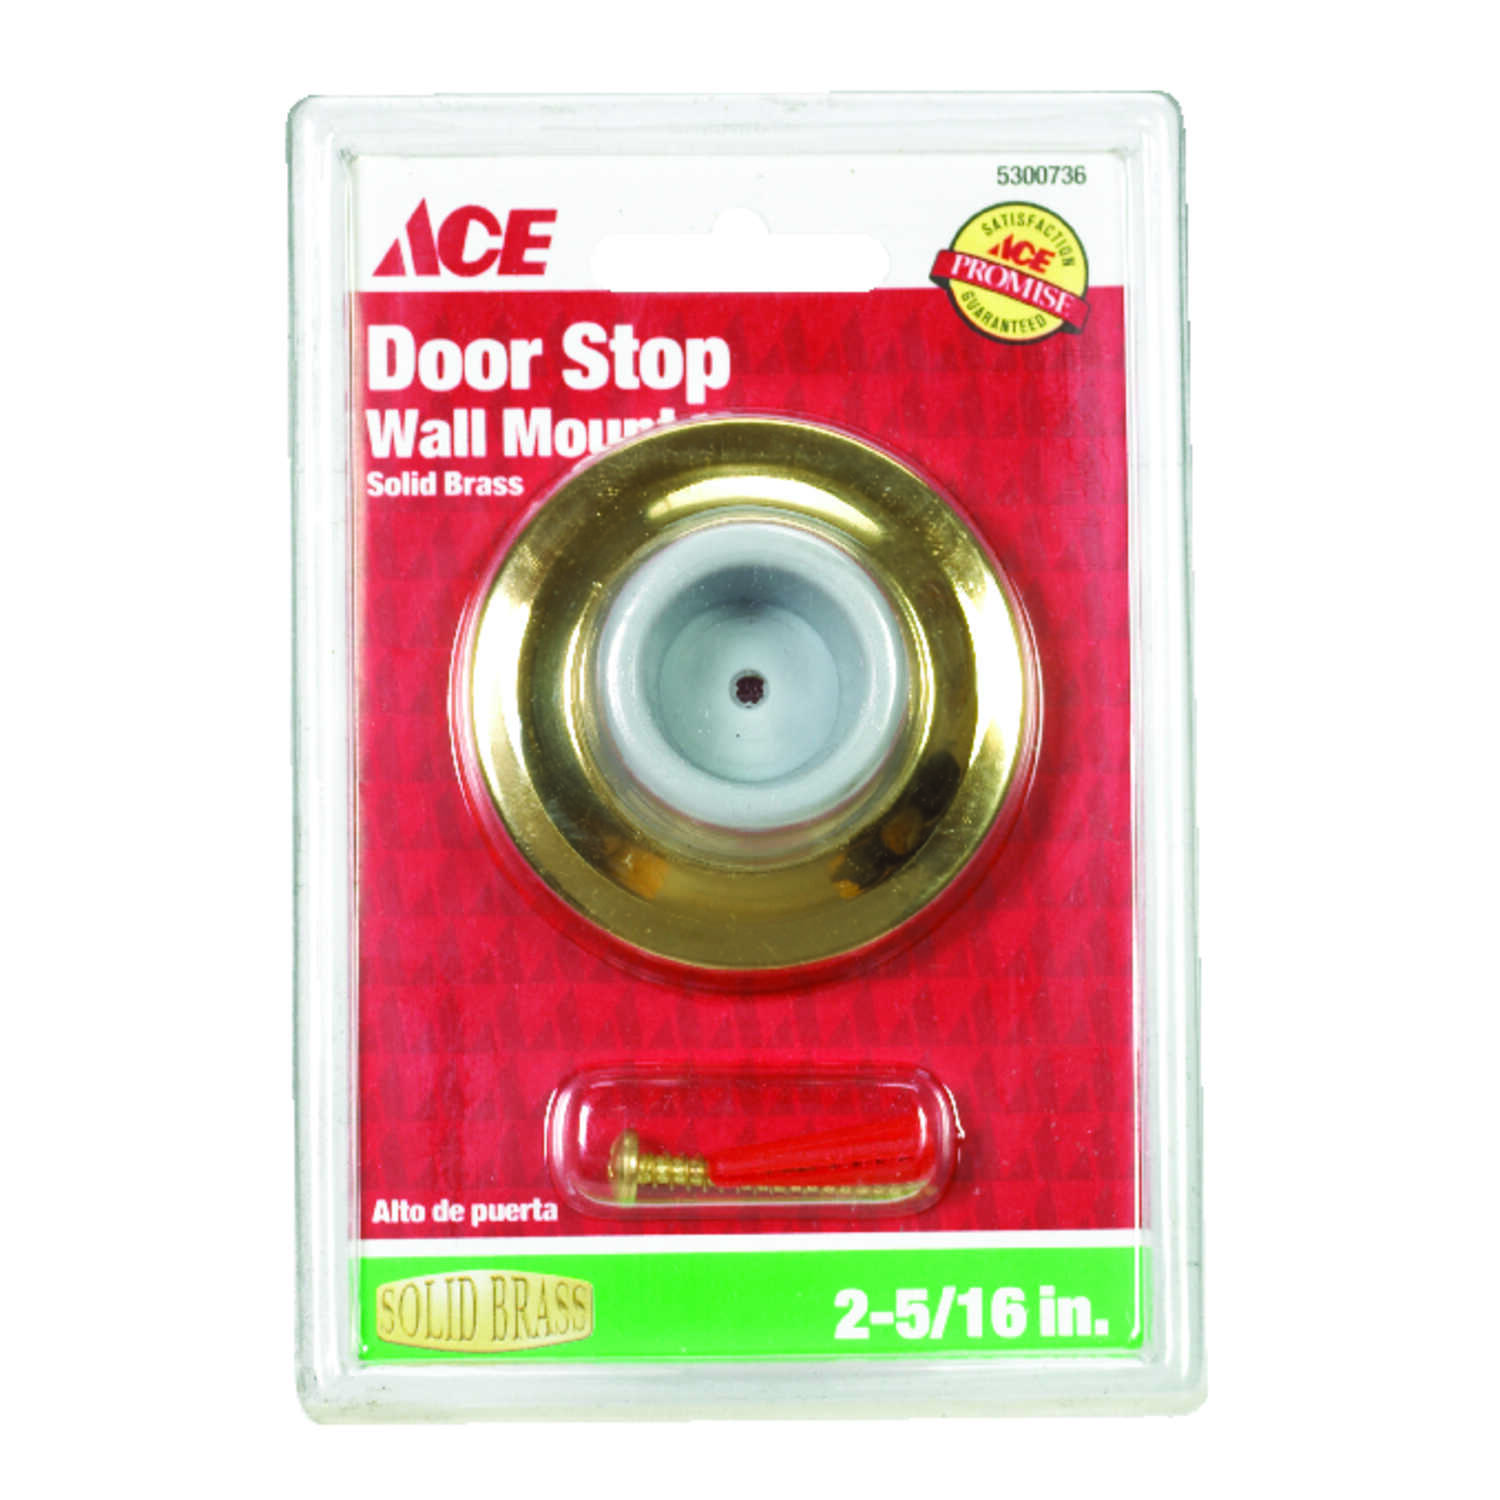 Ace  2.25 in. H x 2-5/16 in. W Solid Brass  Gold  Wall Door Stop  Mounts to door and wall